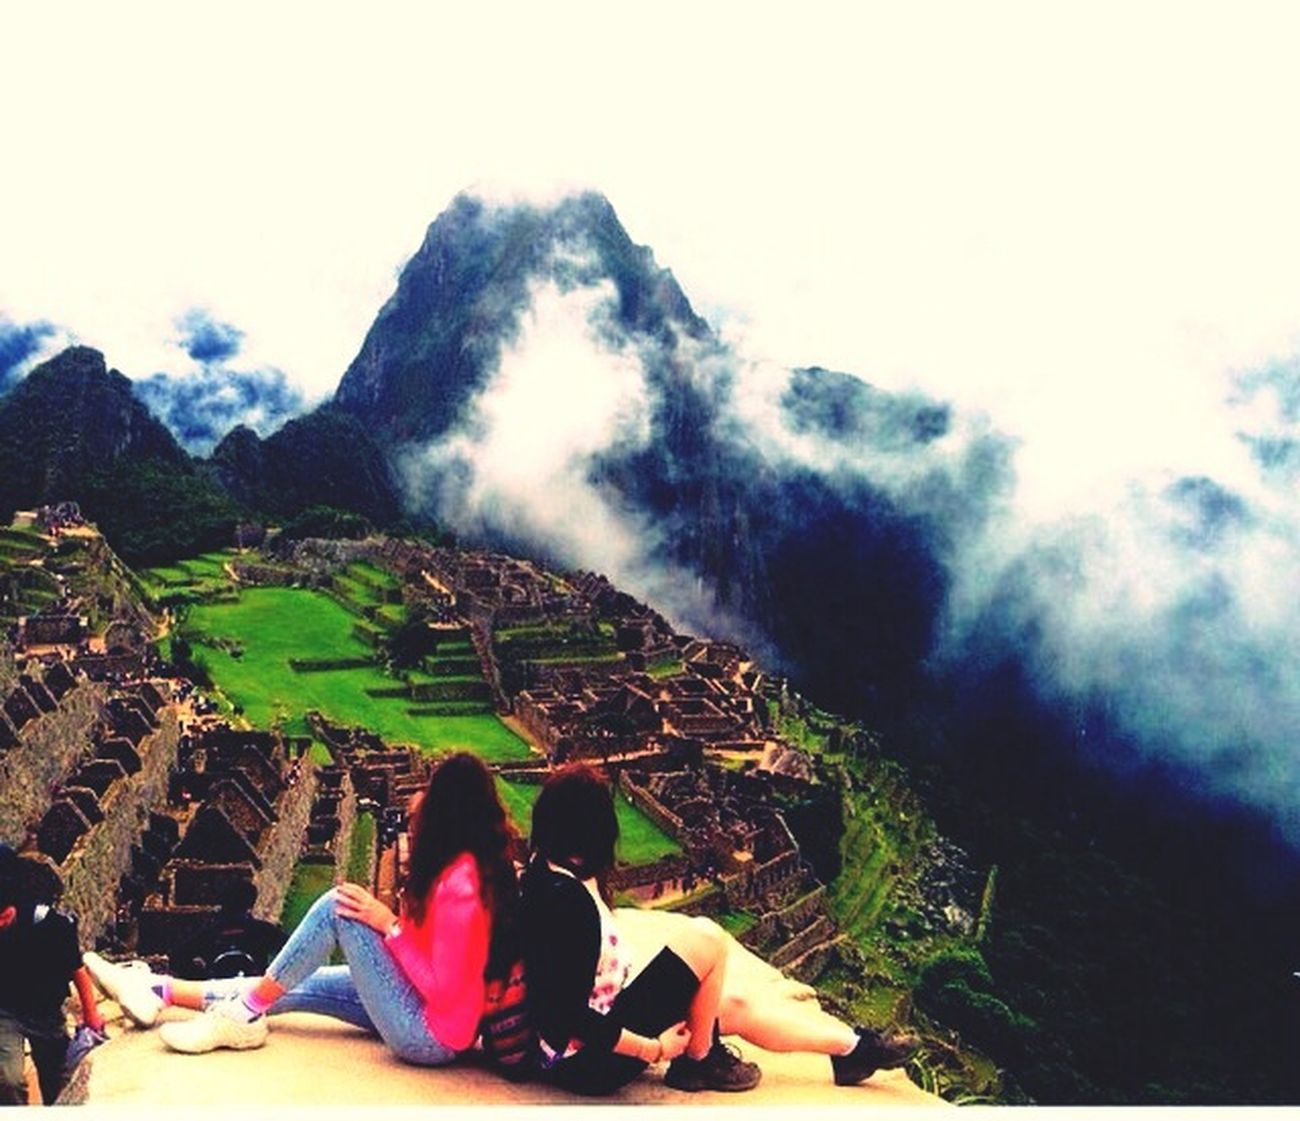 Amazing day at Machupicchu Wonderoftheworld Machu Picchu Peru NeverForget